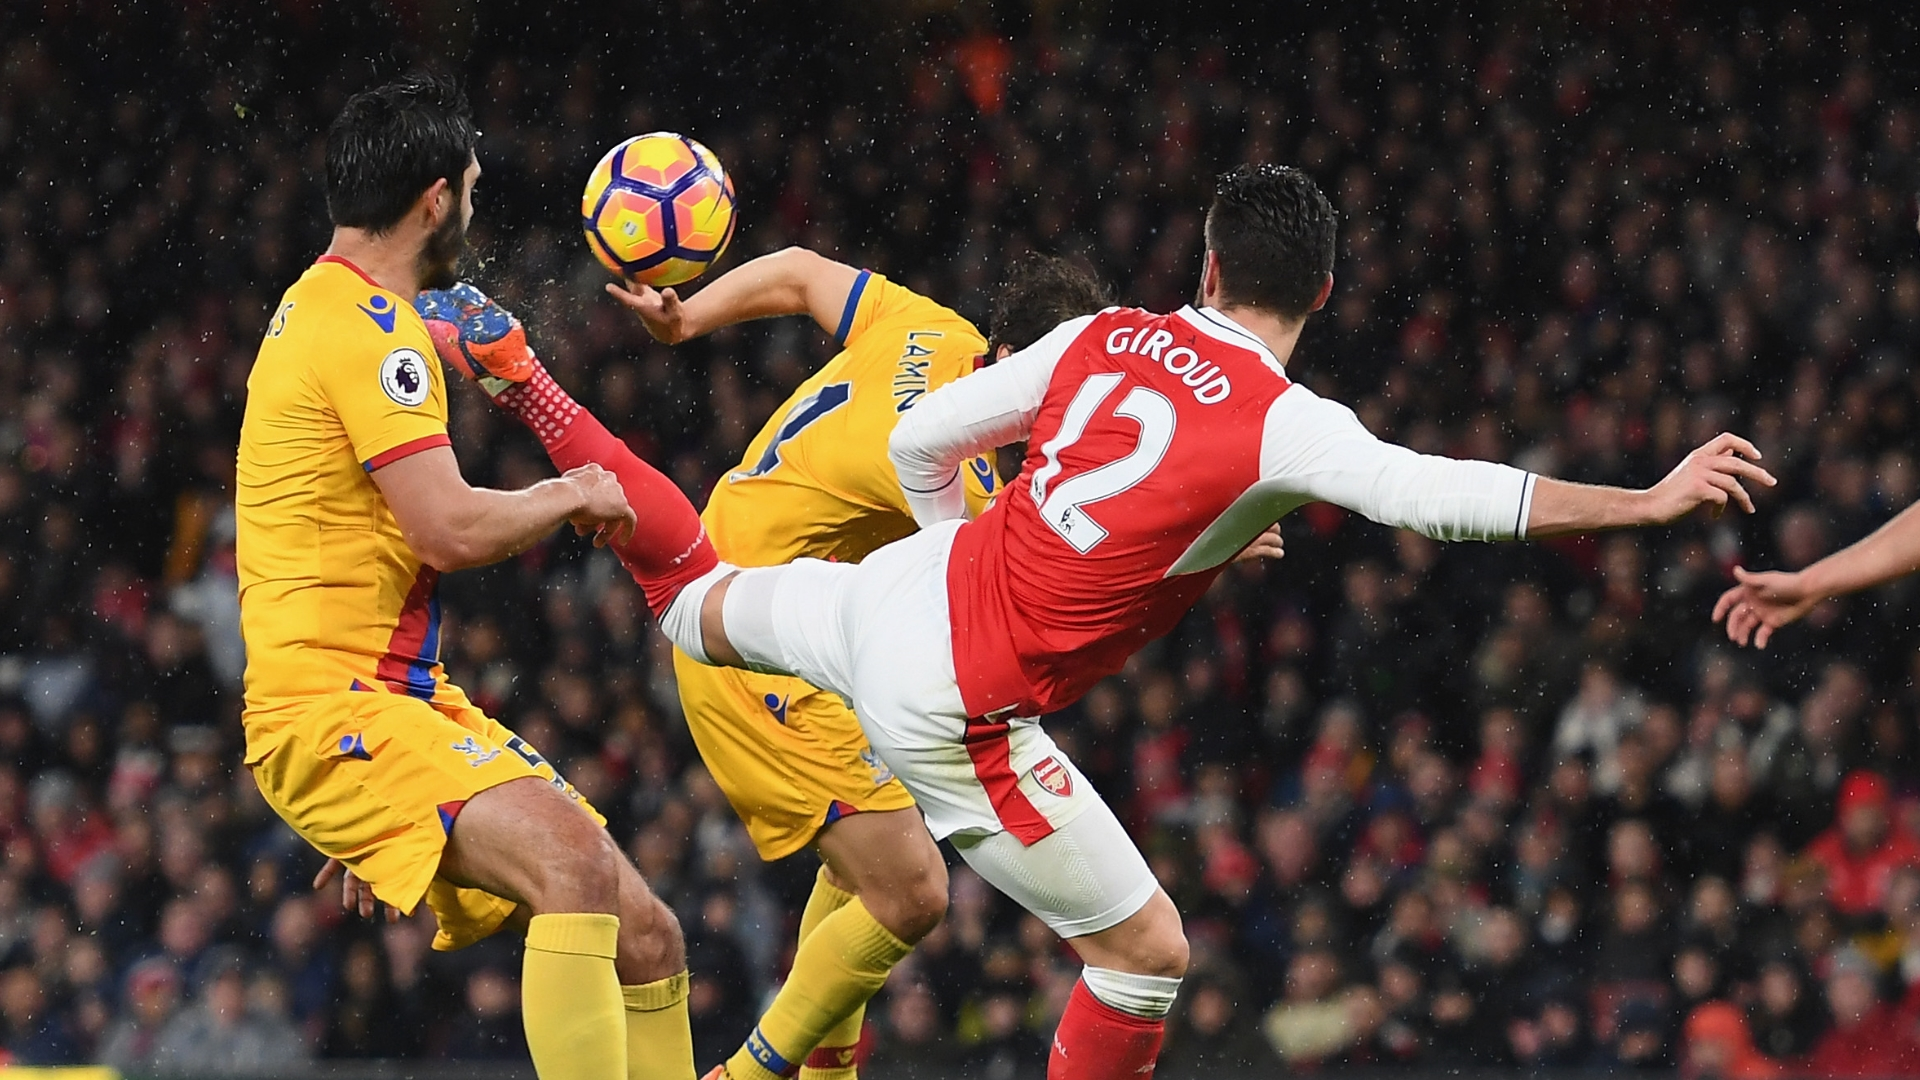 Giroud's scorpion kick gets him a Puskas nomination